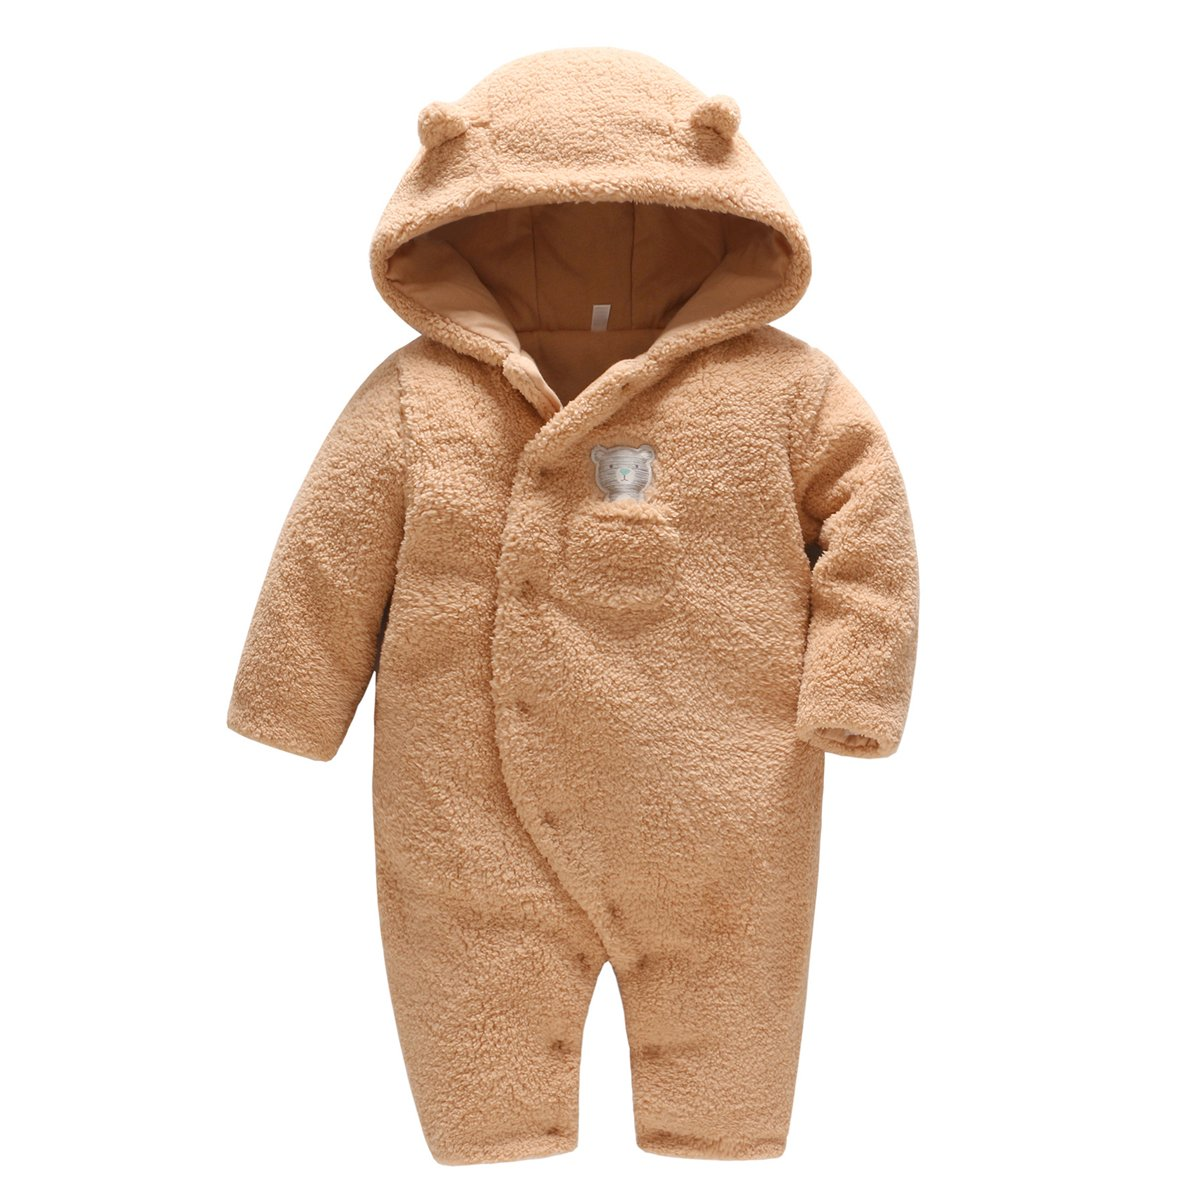 Newborn Baby Hooded Fleece Romper Snowsuit Infant Onesies Jumpsuit Fall Winter Outwear Outfits C170718MY001V